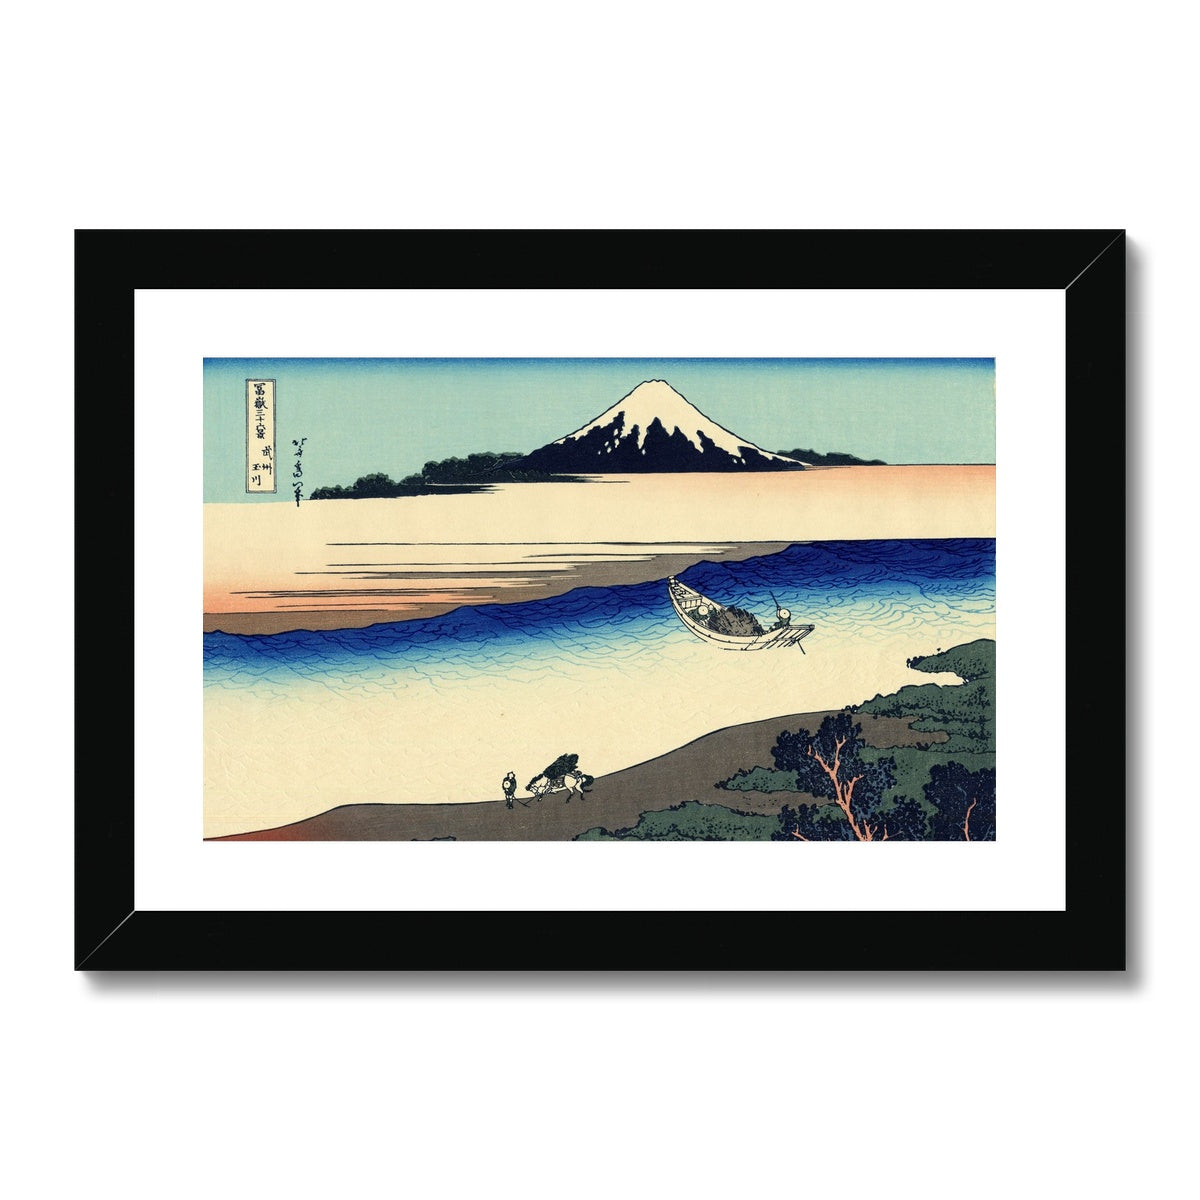 Tama River In Musashi Province - Framed & Mounted Print